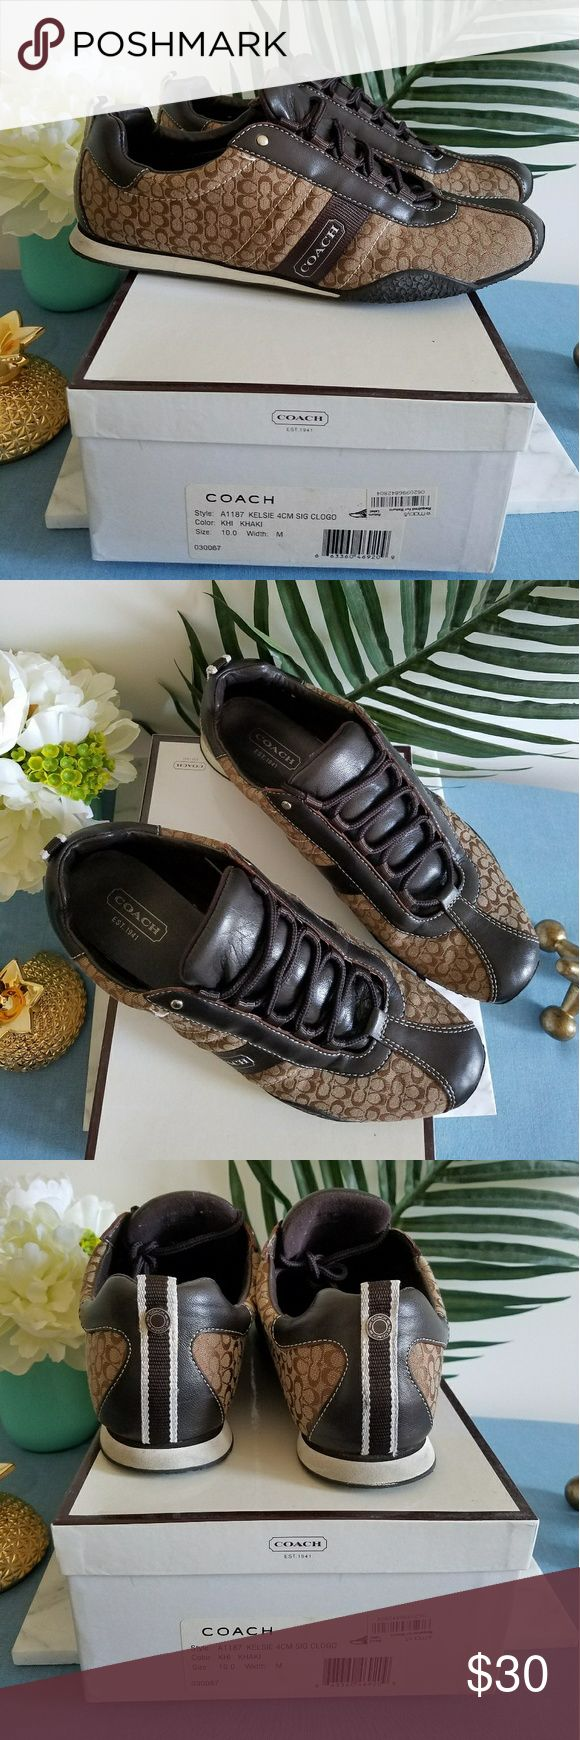 AUTHENTIC women COACH SNEAKERS STYLE: A1187 AUTHENTIC COACH SNEAKERS STYLE: A1187 KELSIE 4CM SIGNATURE LOGO COLOR: Brown Khaki LIGHTLY WORN - SOLES SHOWS WEAR. COACH Shoes Sneakers